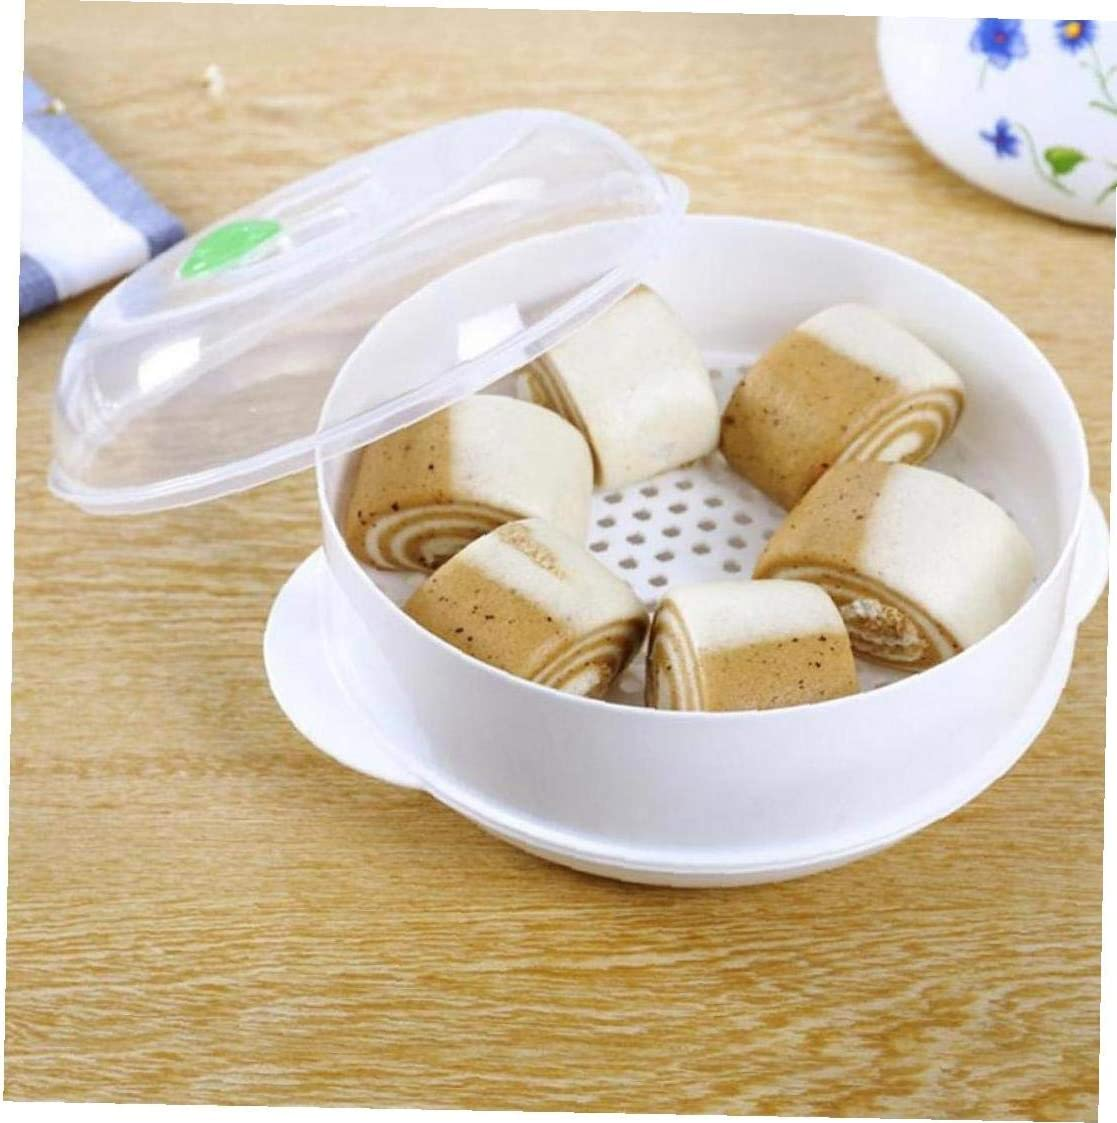 Plastic Single-layer Microwave Oven Steamer Plastic Round Steamer Microwave Steamer with Lid Cooking Tool